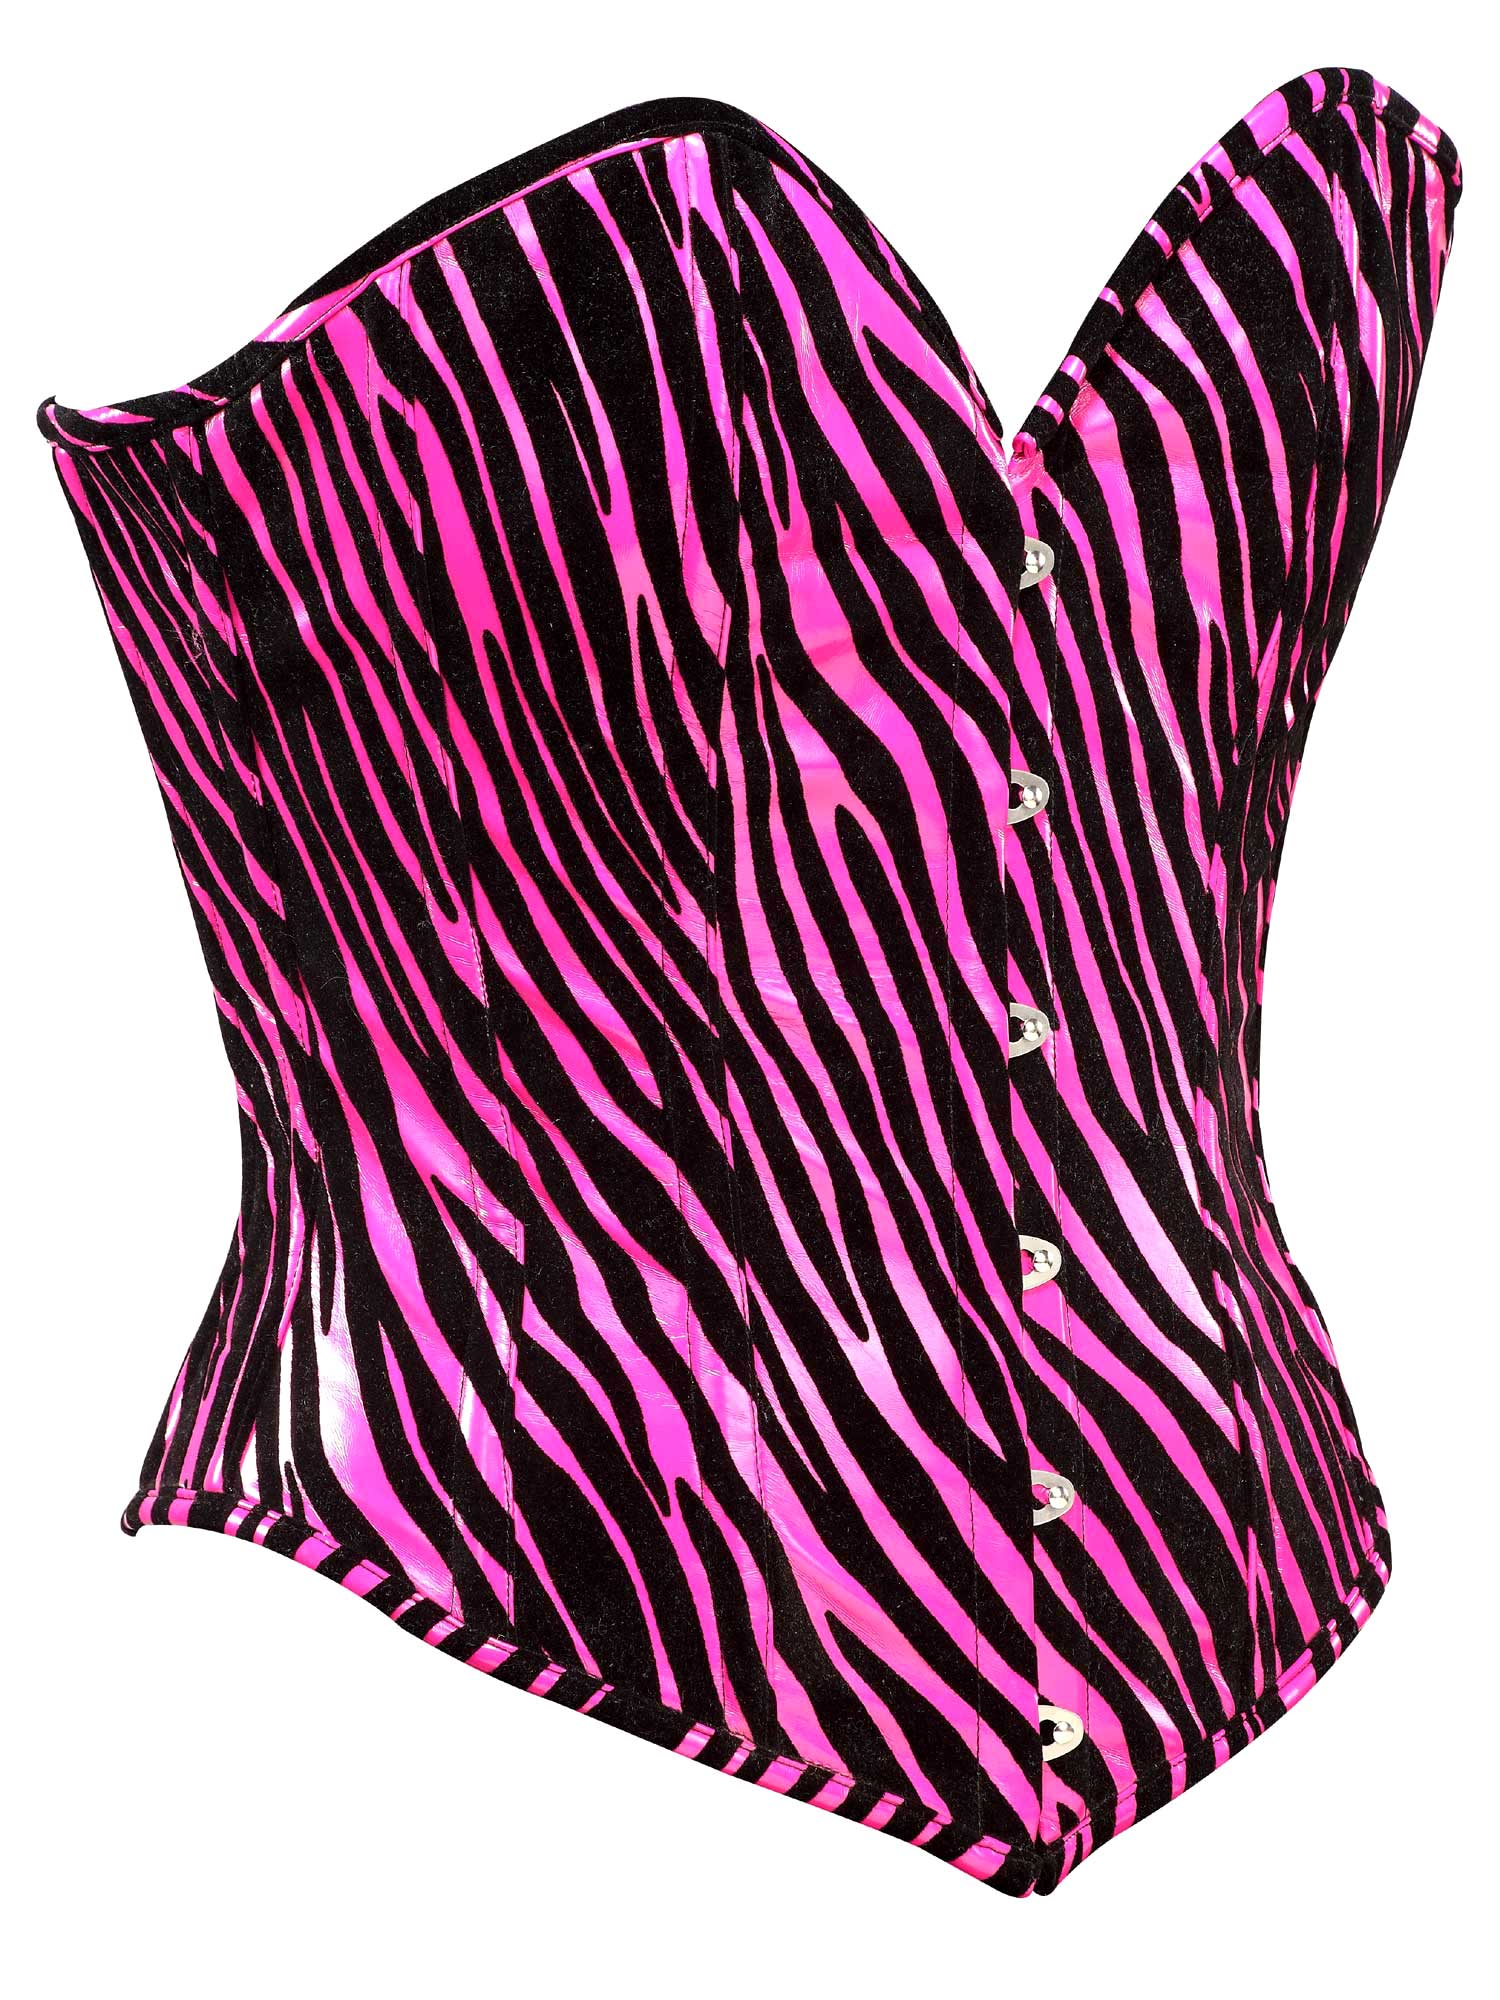 tiger_animal_print_on_faux_leather_steel_boning_corset_waist_cincher_bustier_bustiers_and_corsets_4.jpg